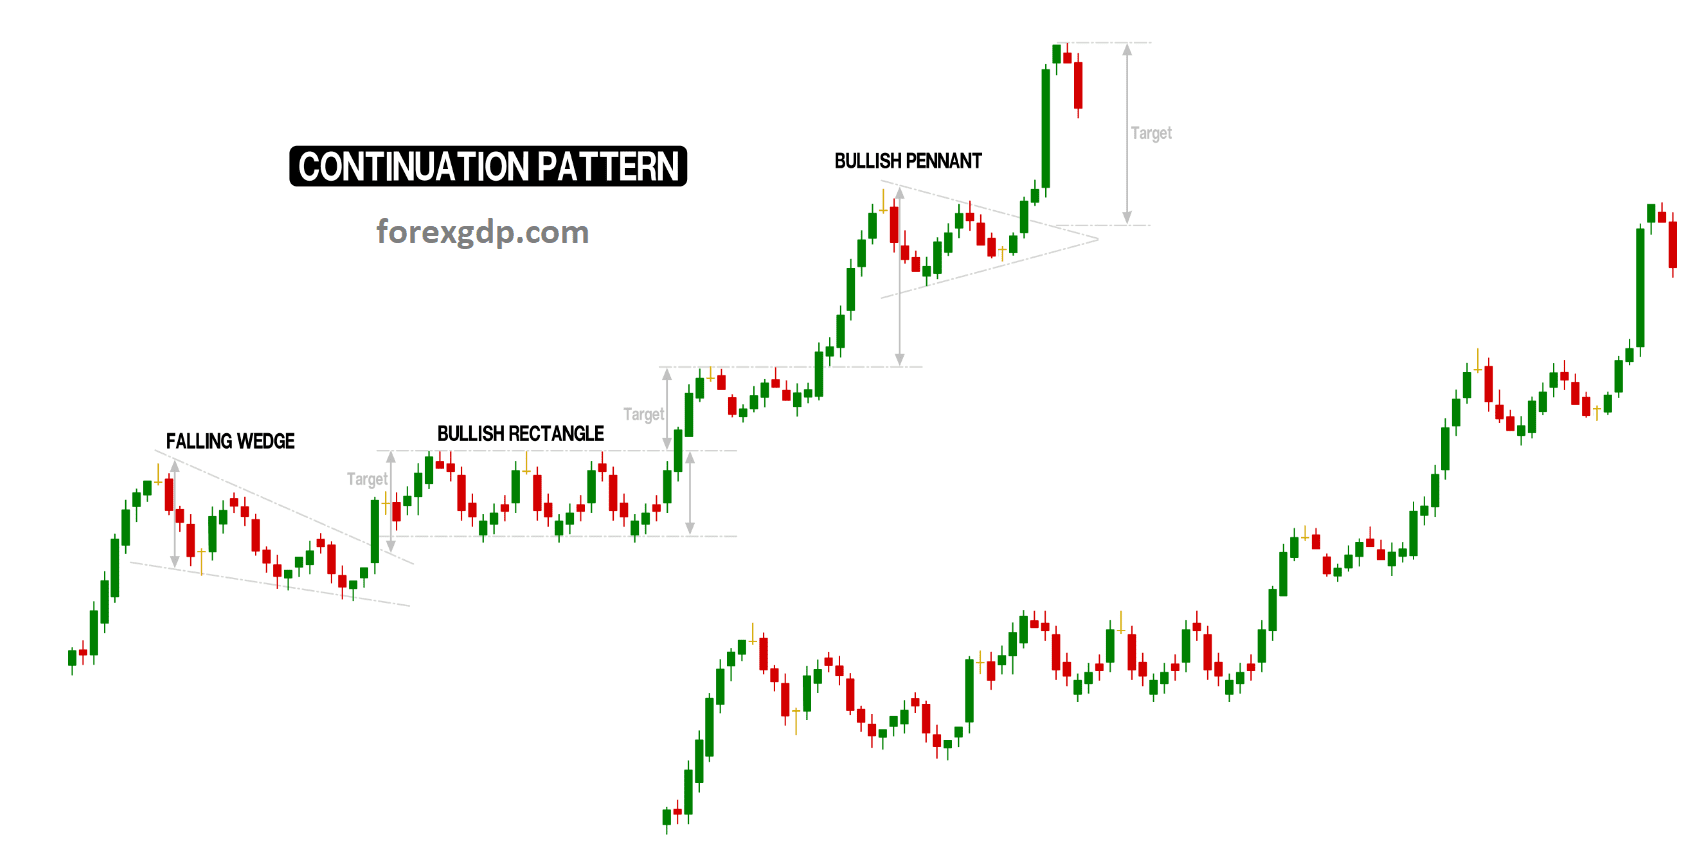 Continuation pattern in the charts